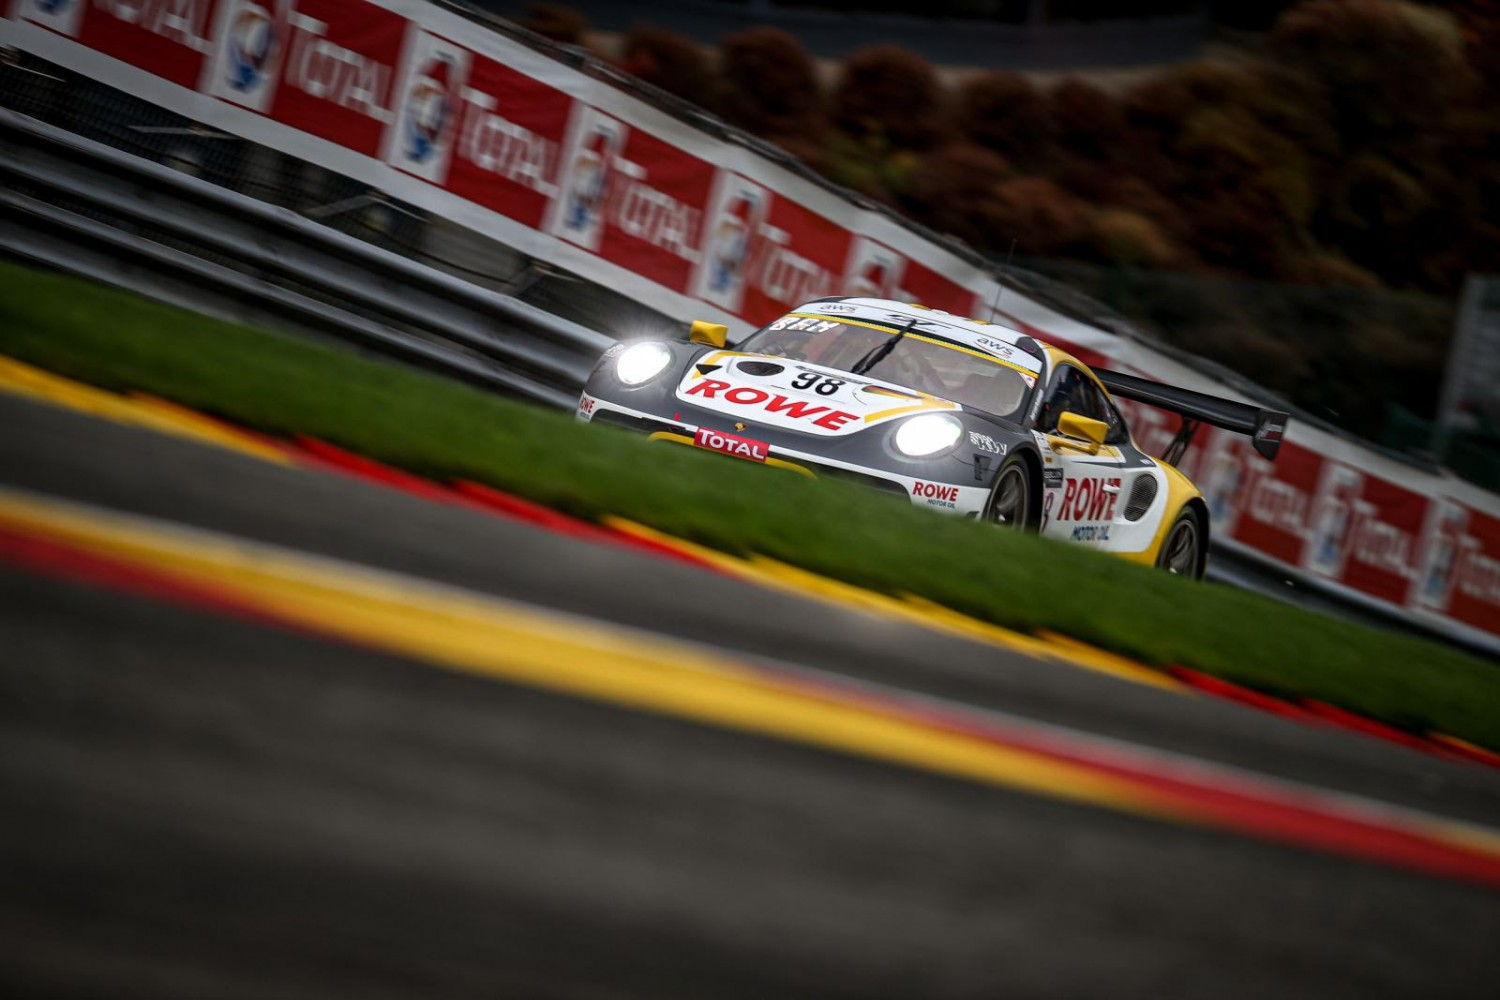 Porsche celebrates second successive Total 24 Hours of Spa victory after ROWE Racing blazes a trail to glory